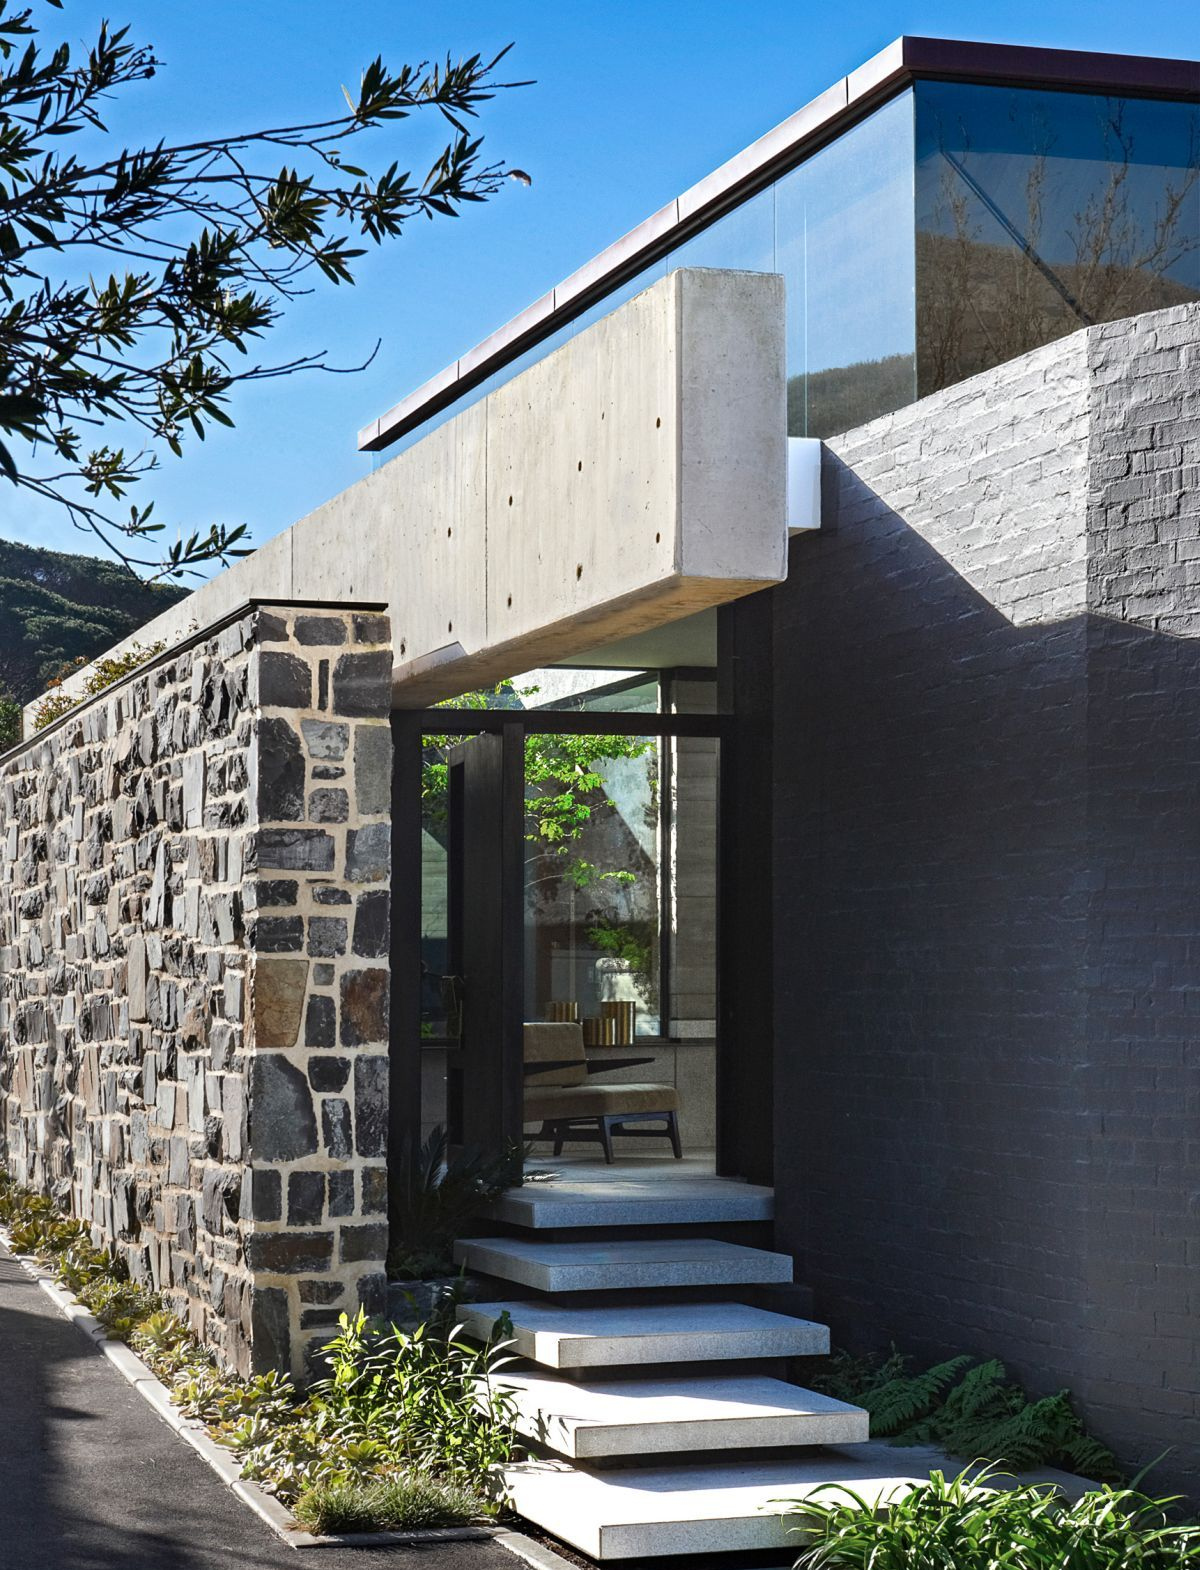 A stone wall hides the lower floors from the street making them private